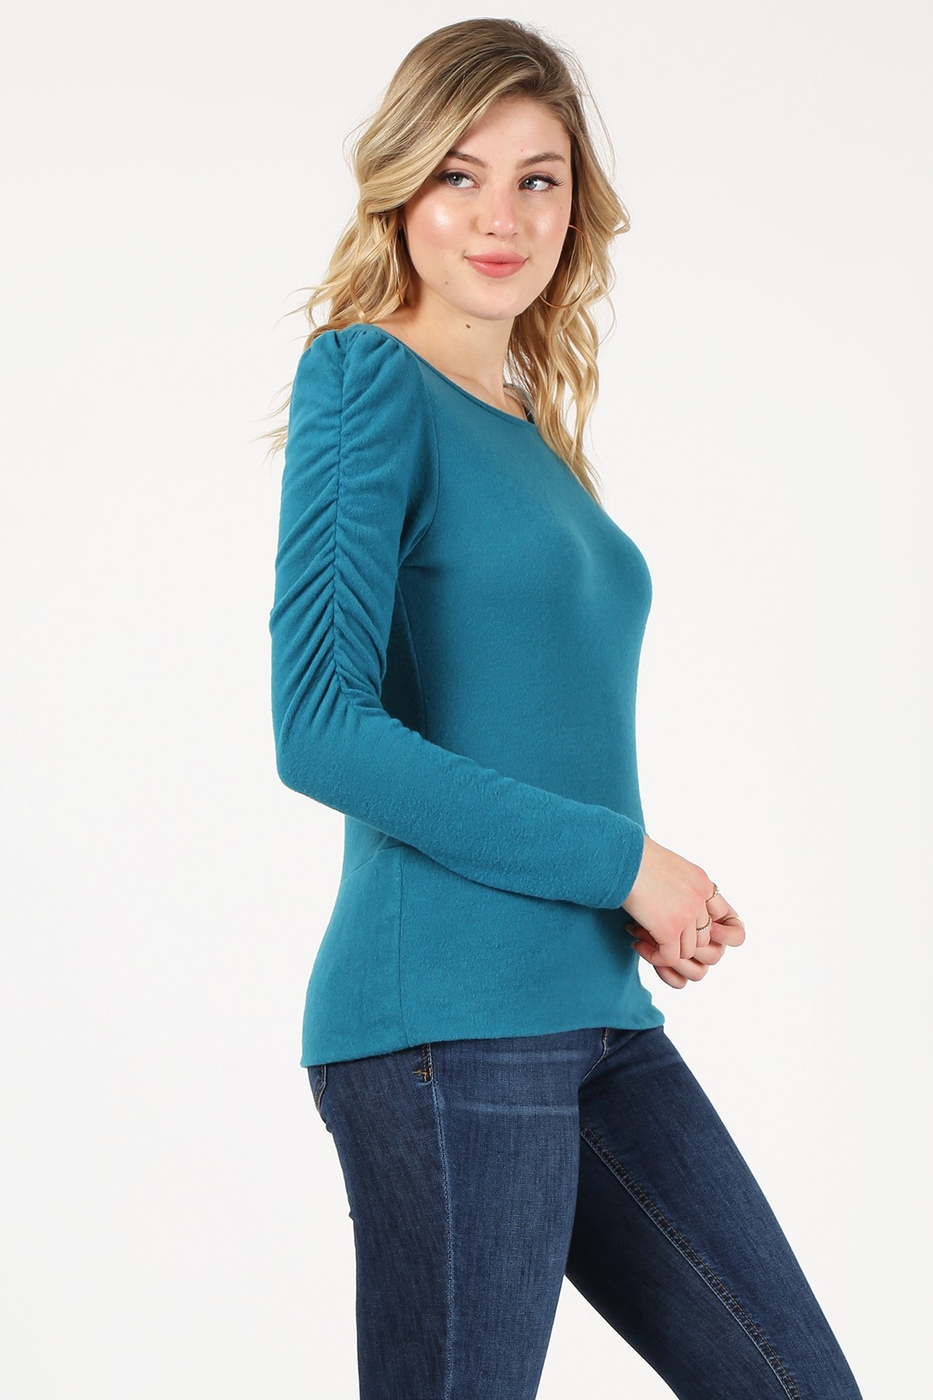 Fitted top with ruched long sleeves - orangeshine.com